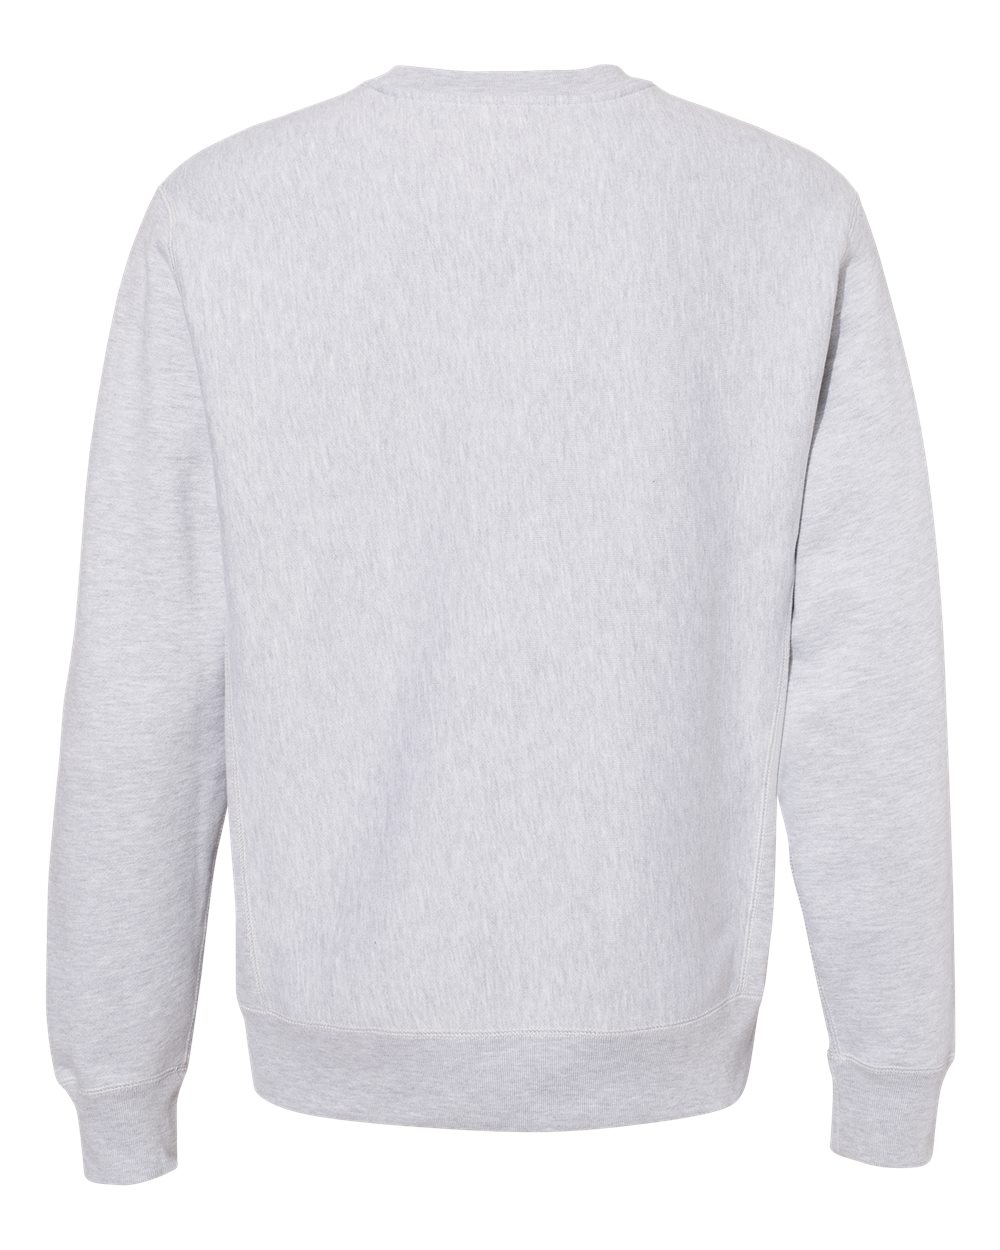 Independent-Trading-Co-Mens-Premium-Heavyweight-Cross-Grain-Sweatshirt-IND5000C thumbnail 22